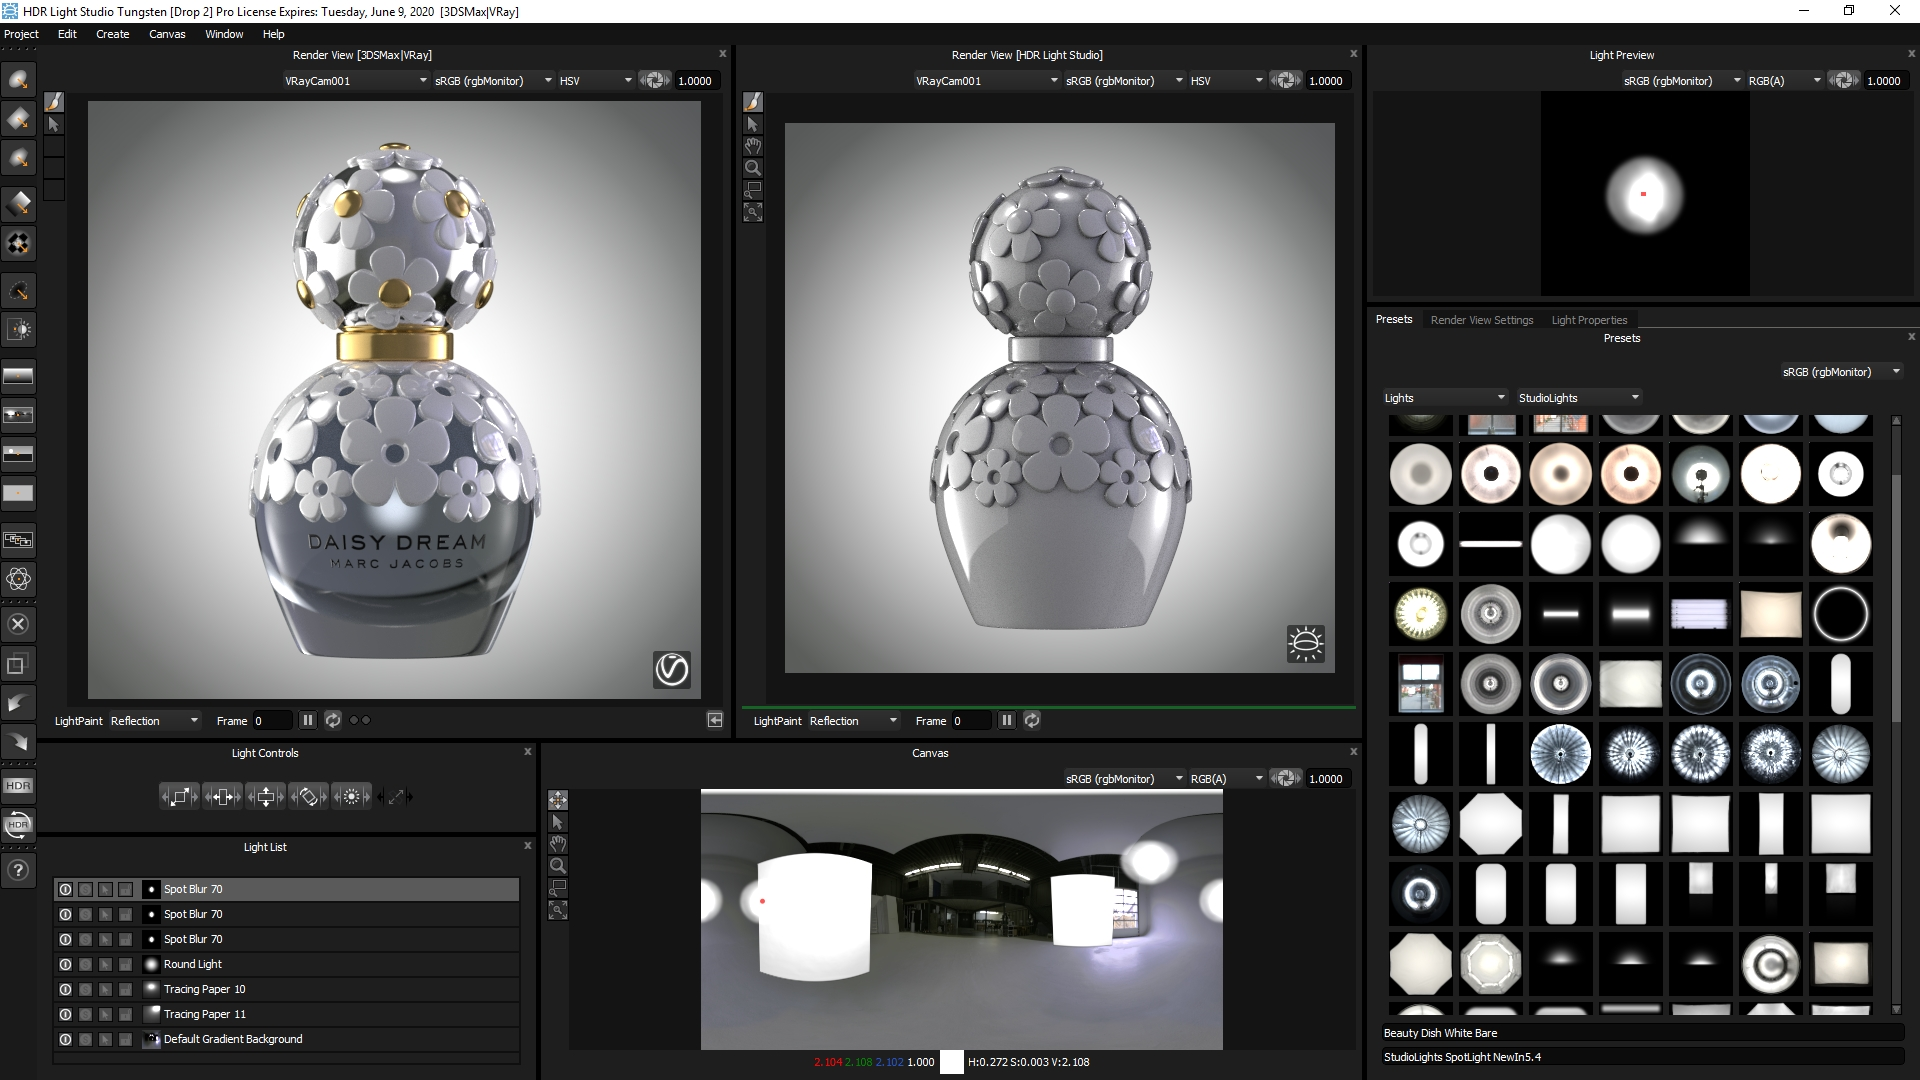 How does HDR Light Studio work with 3ds Max?